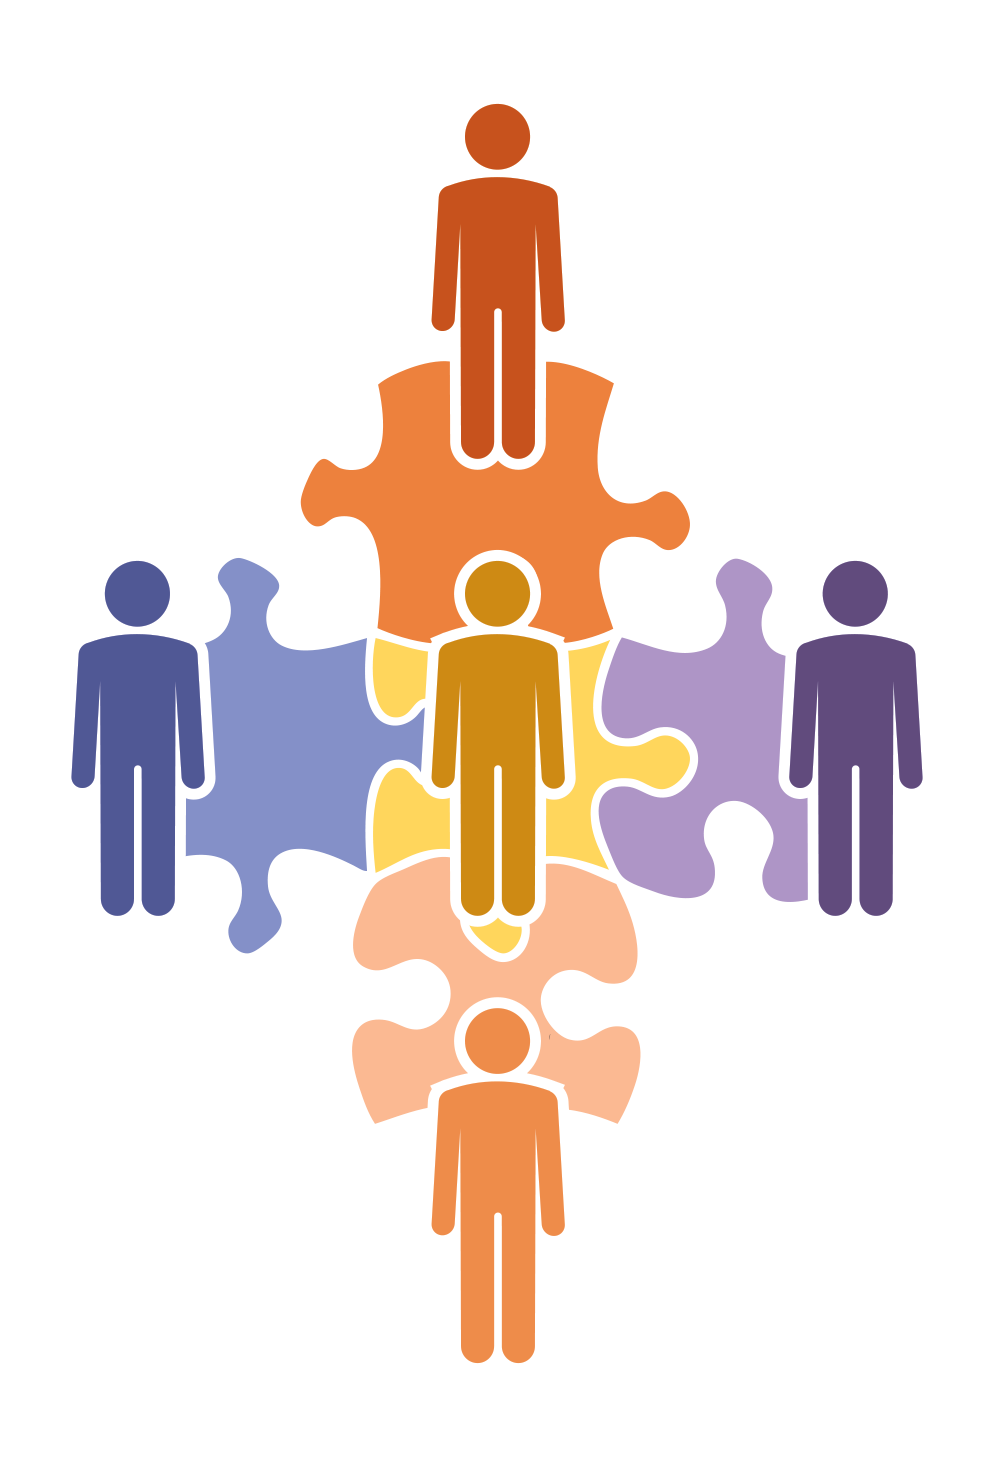 Leadership clipart executive director. Finding common ground uniting